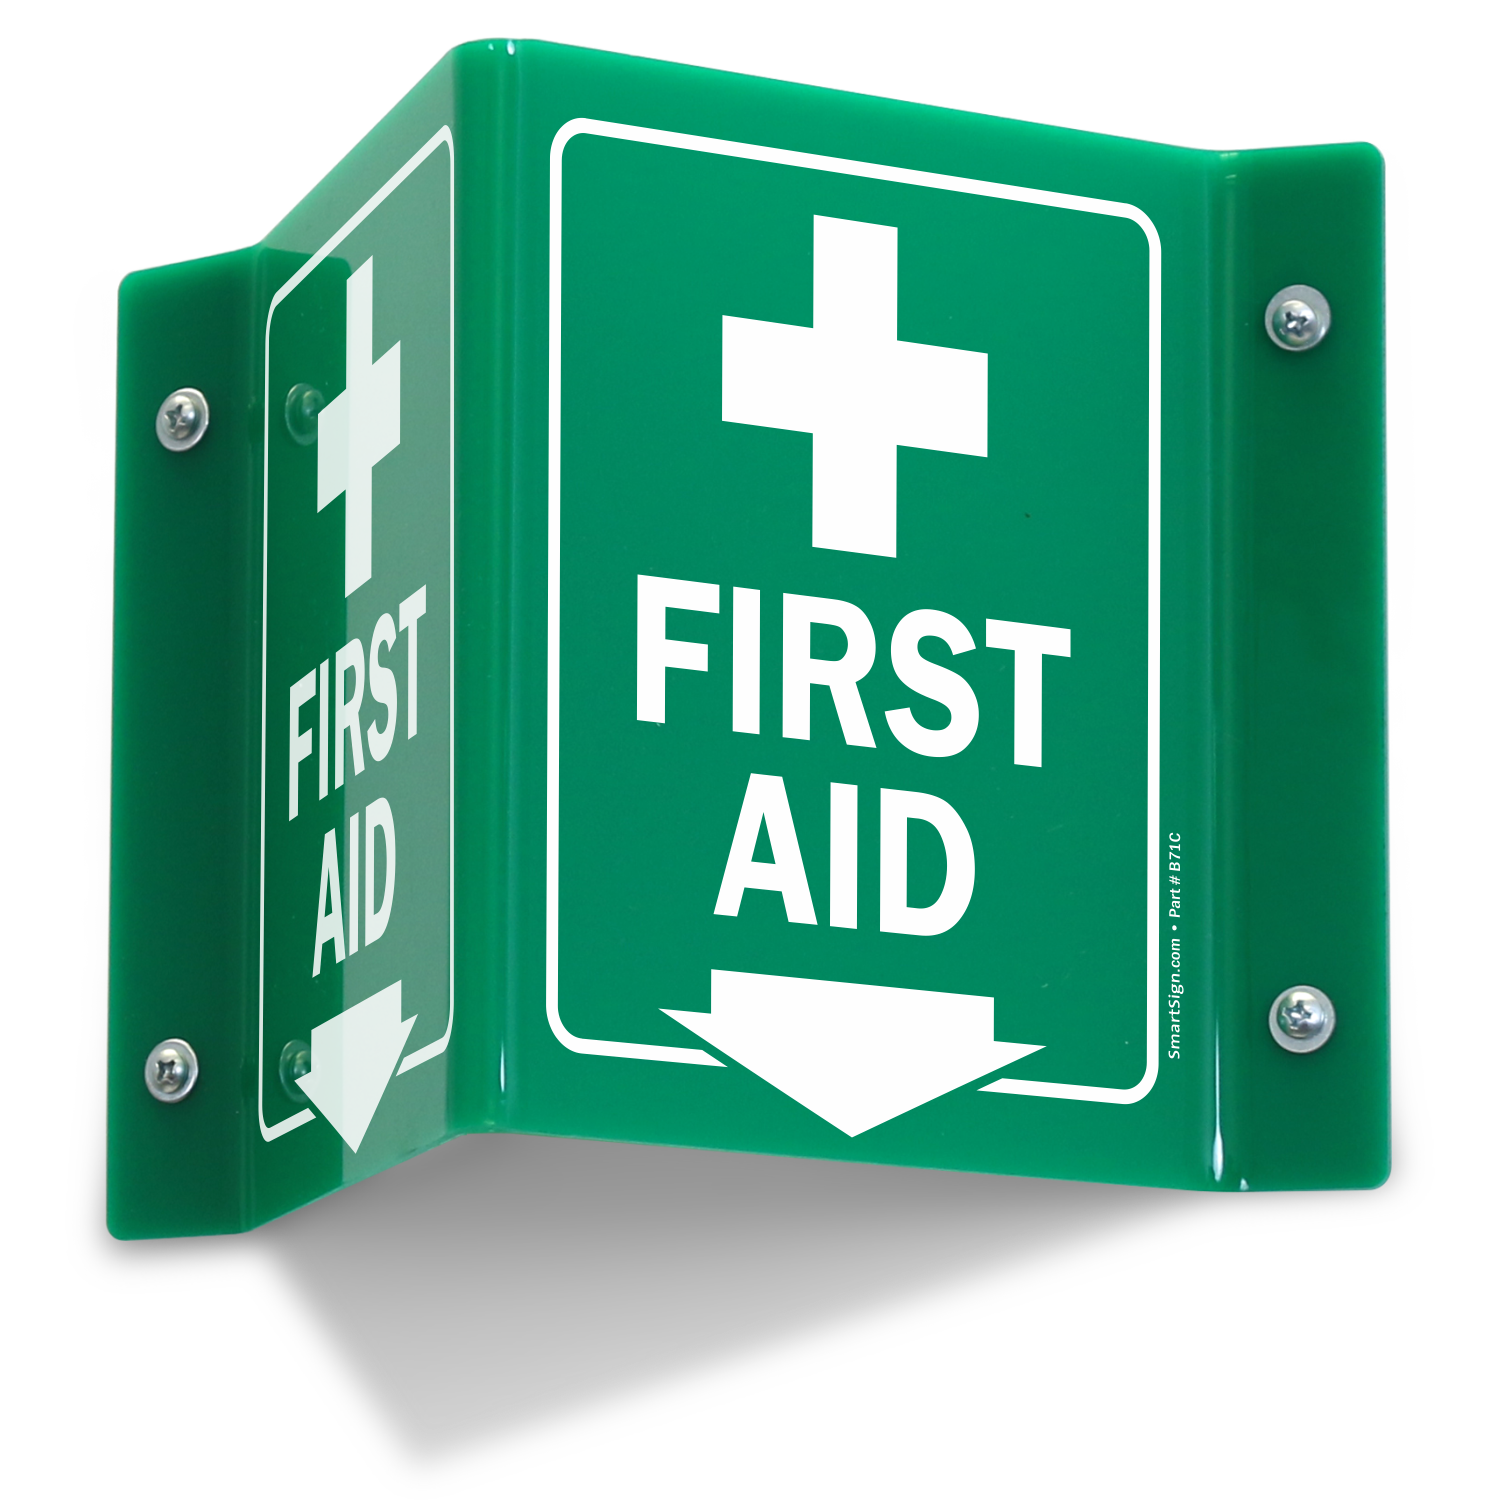 Projecting First Aid Green Sign With Down Arrow